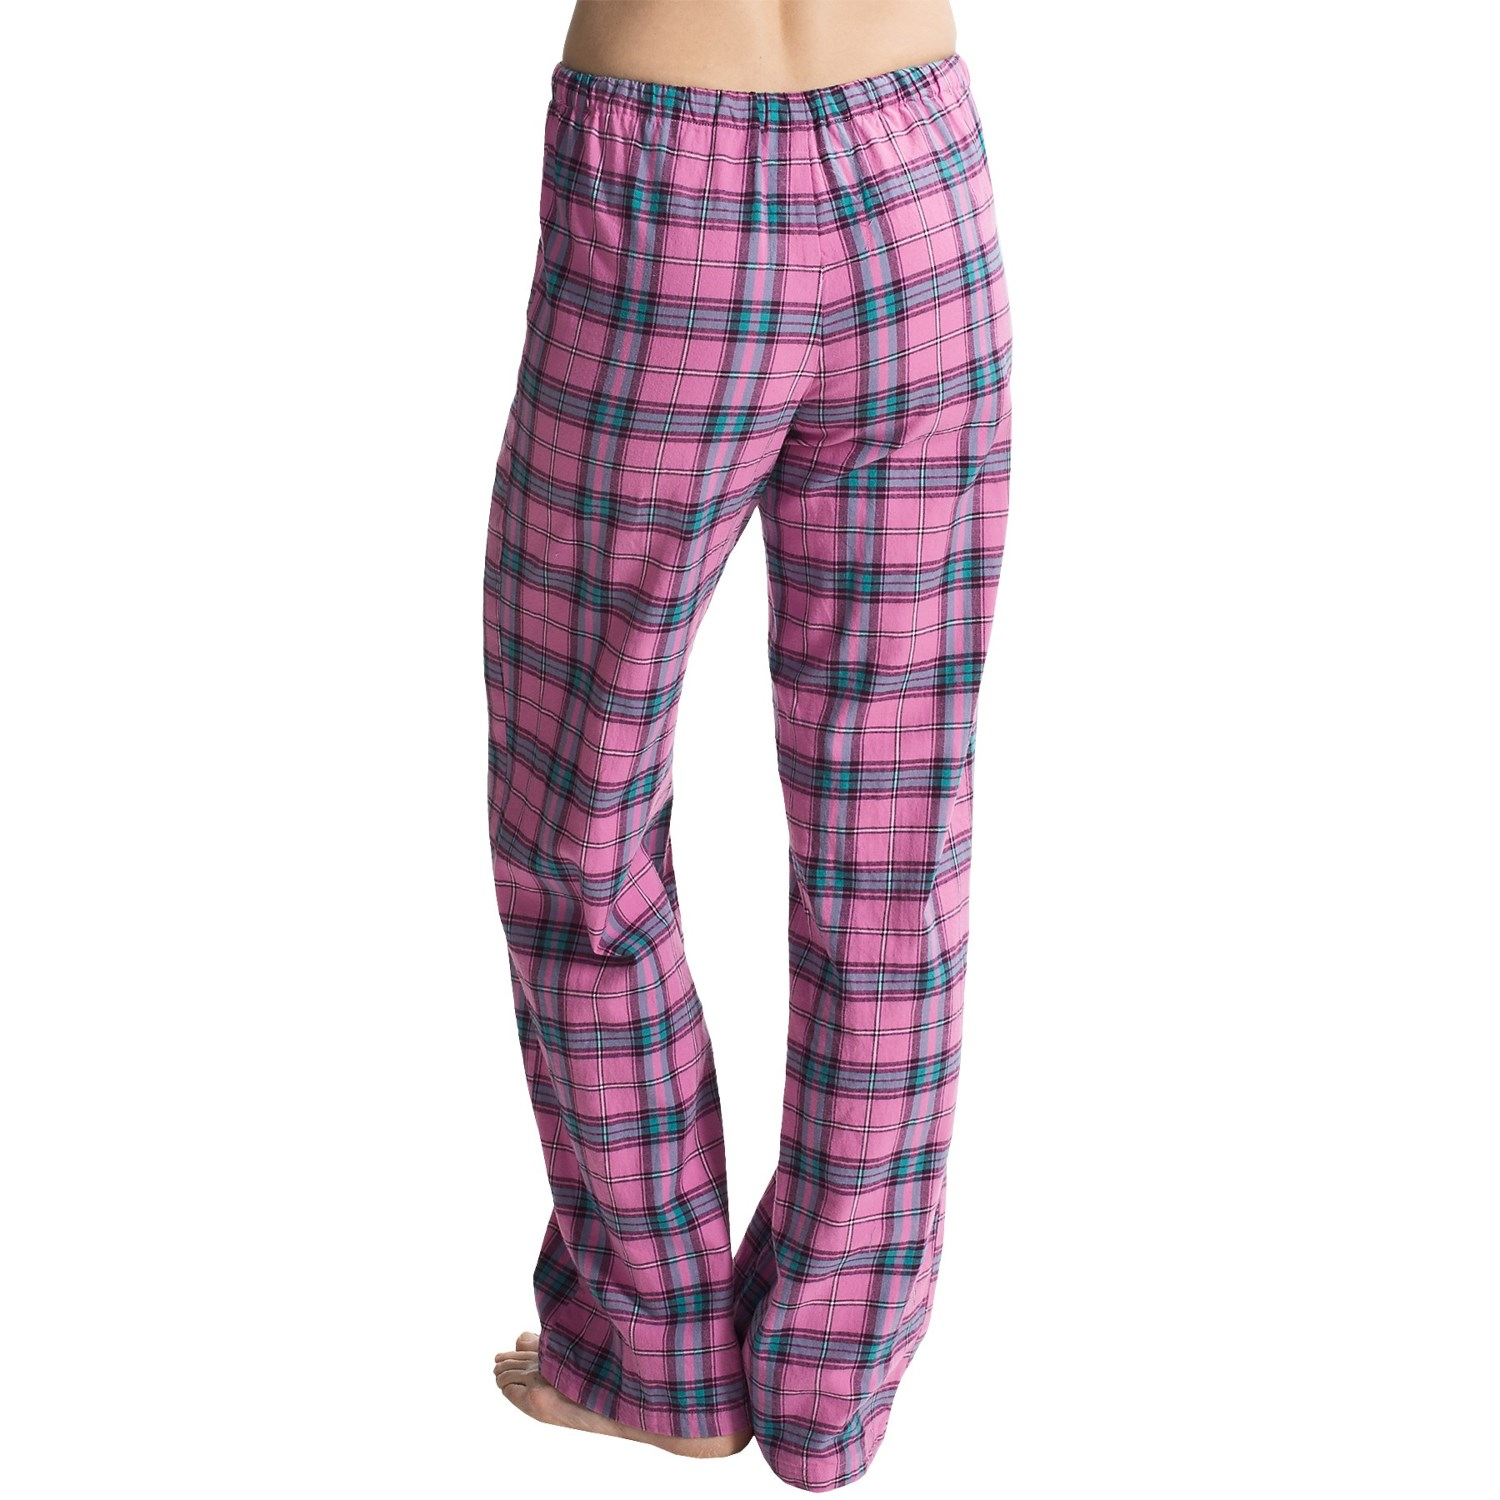 Shop for women sleep pants online at Target. Free shipping on purchases over $35 and save 5% every day with your Target REDcard.